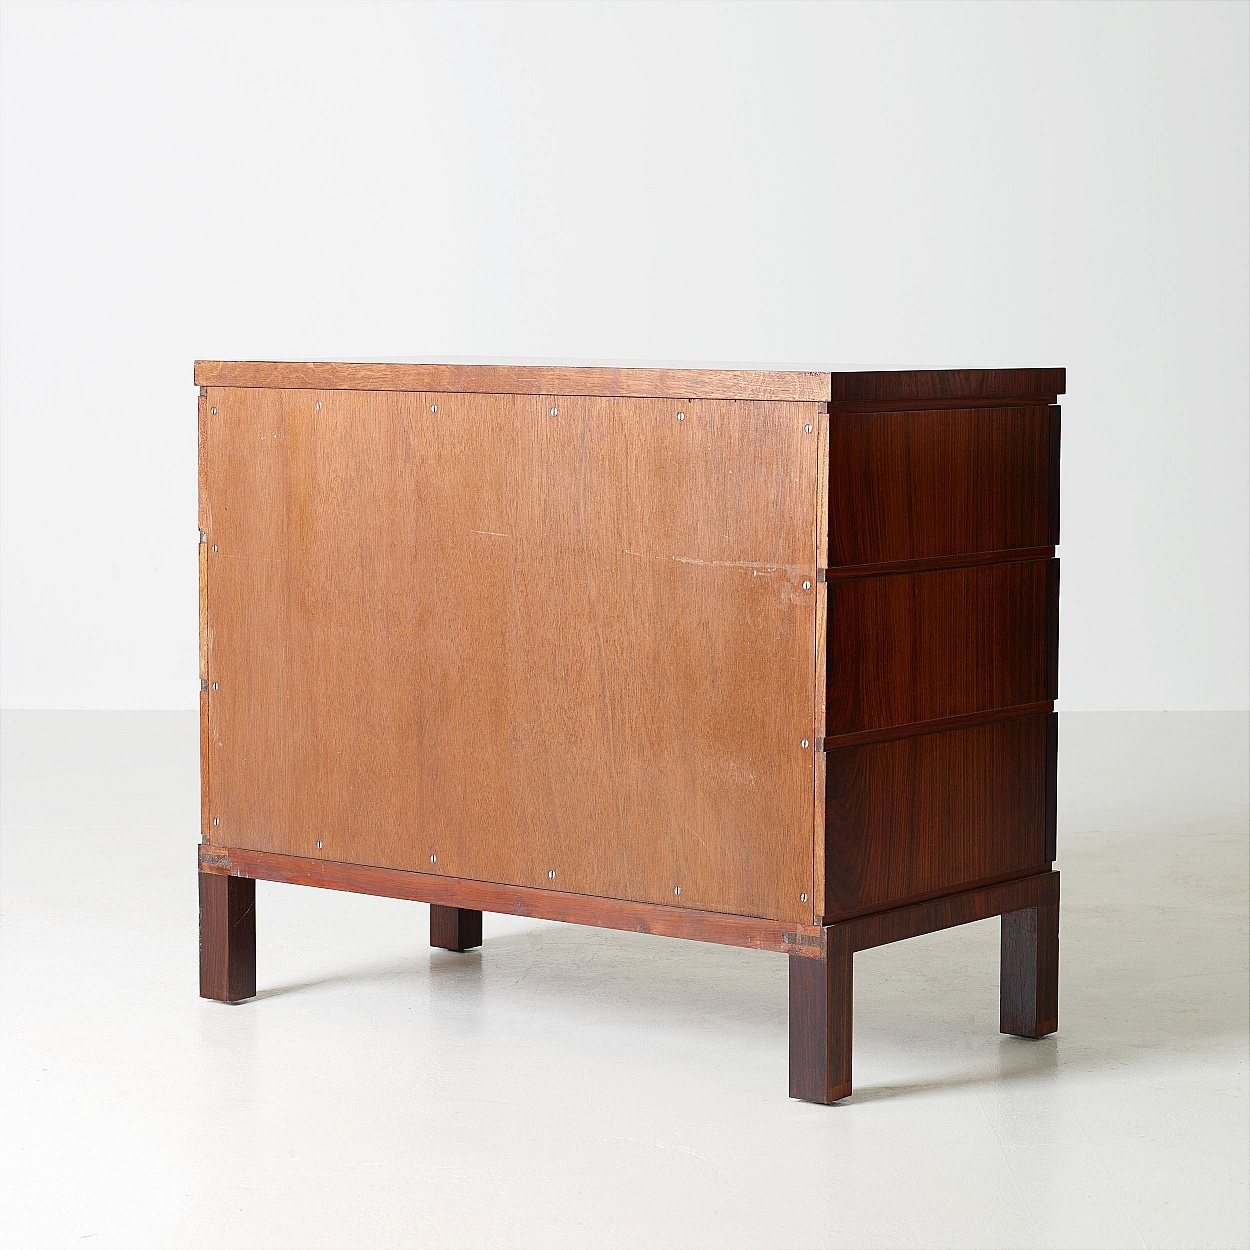 Margaretha Köhler, Chest of drawers, 1930´s